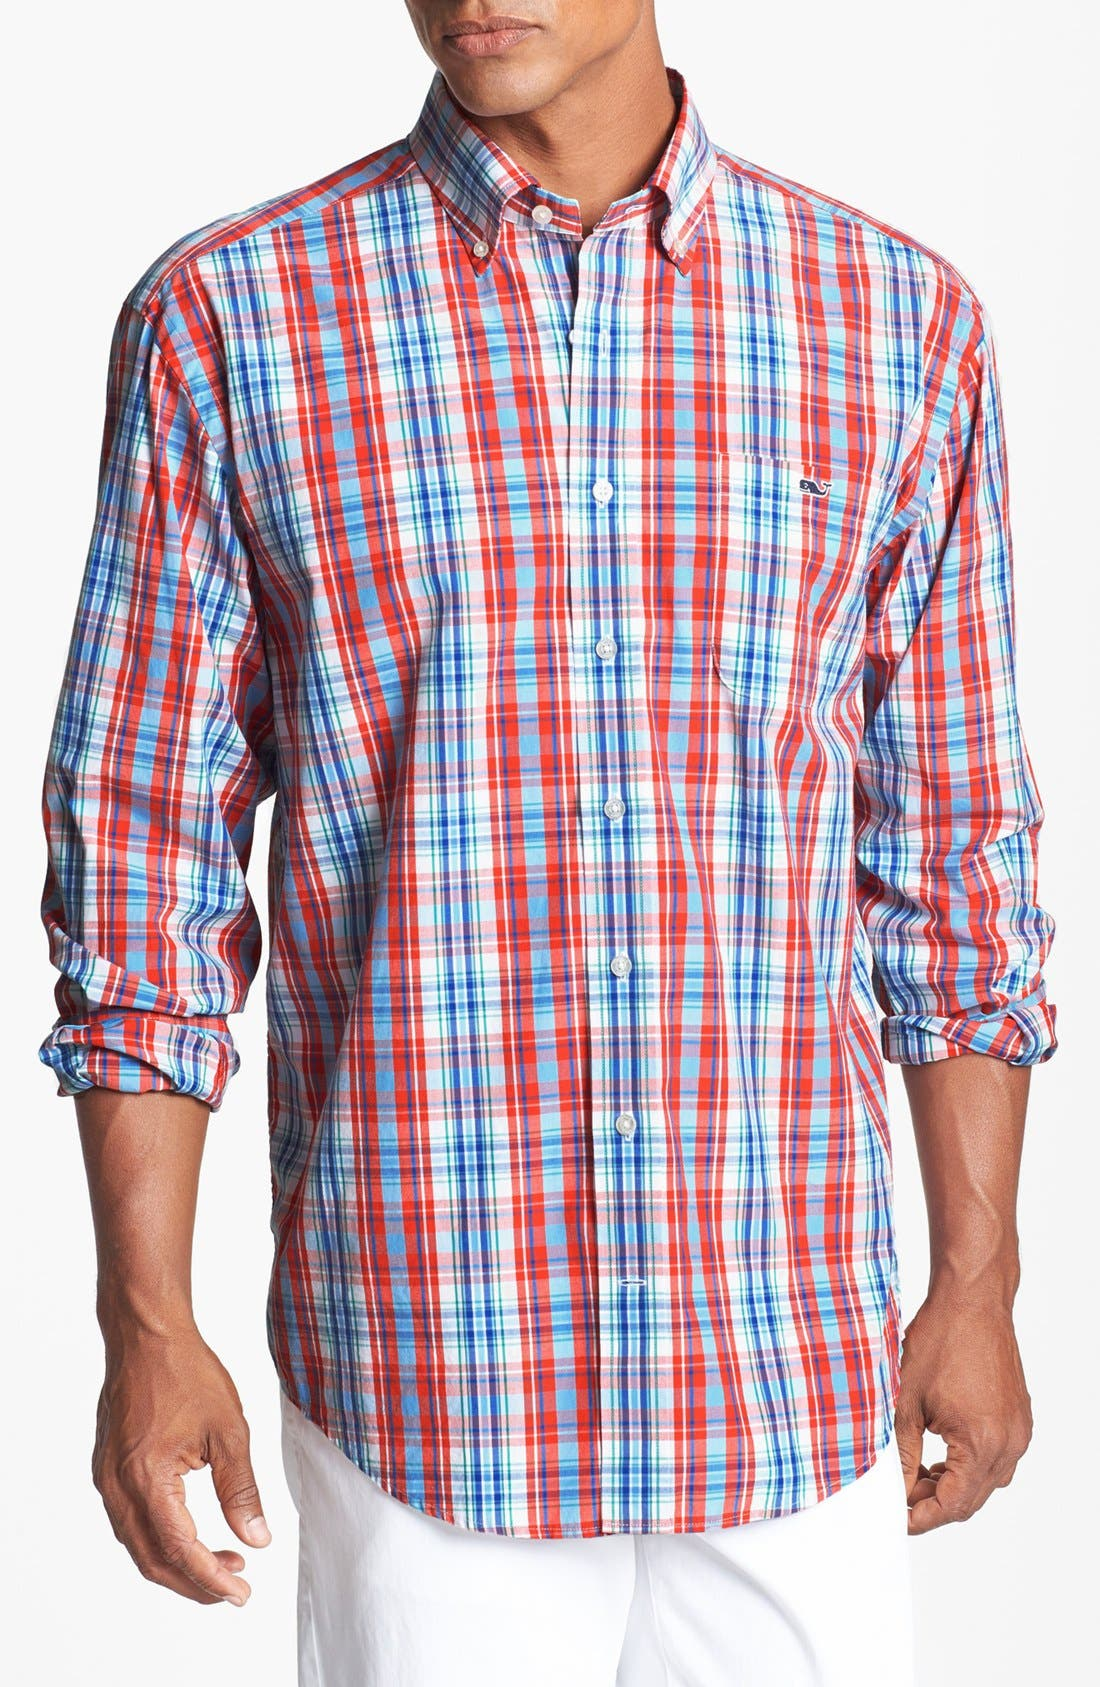 Main Image - Vineyard Vines 'Tucker - Fog Cove' Sport Shirt